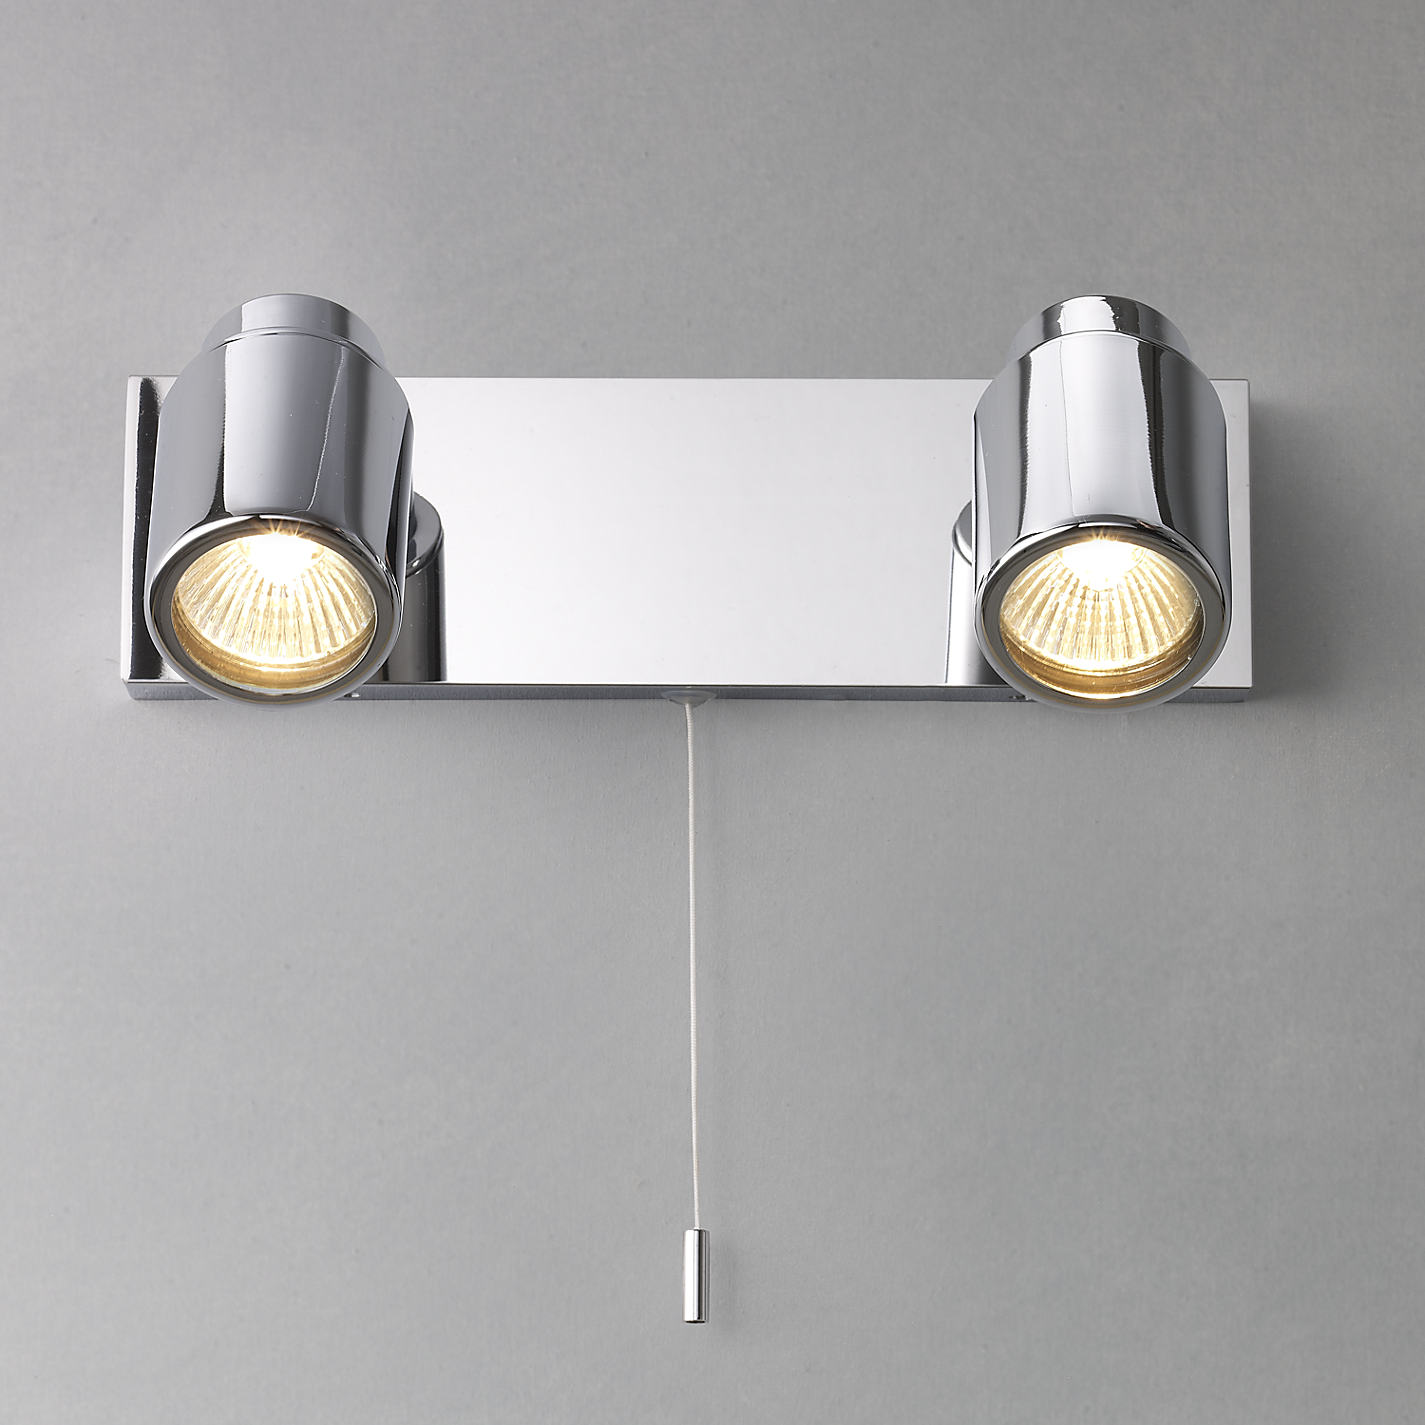 Bathroom Lights John Lewis buy astro como 2 bathroom spotlight wall plate | john lewis